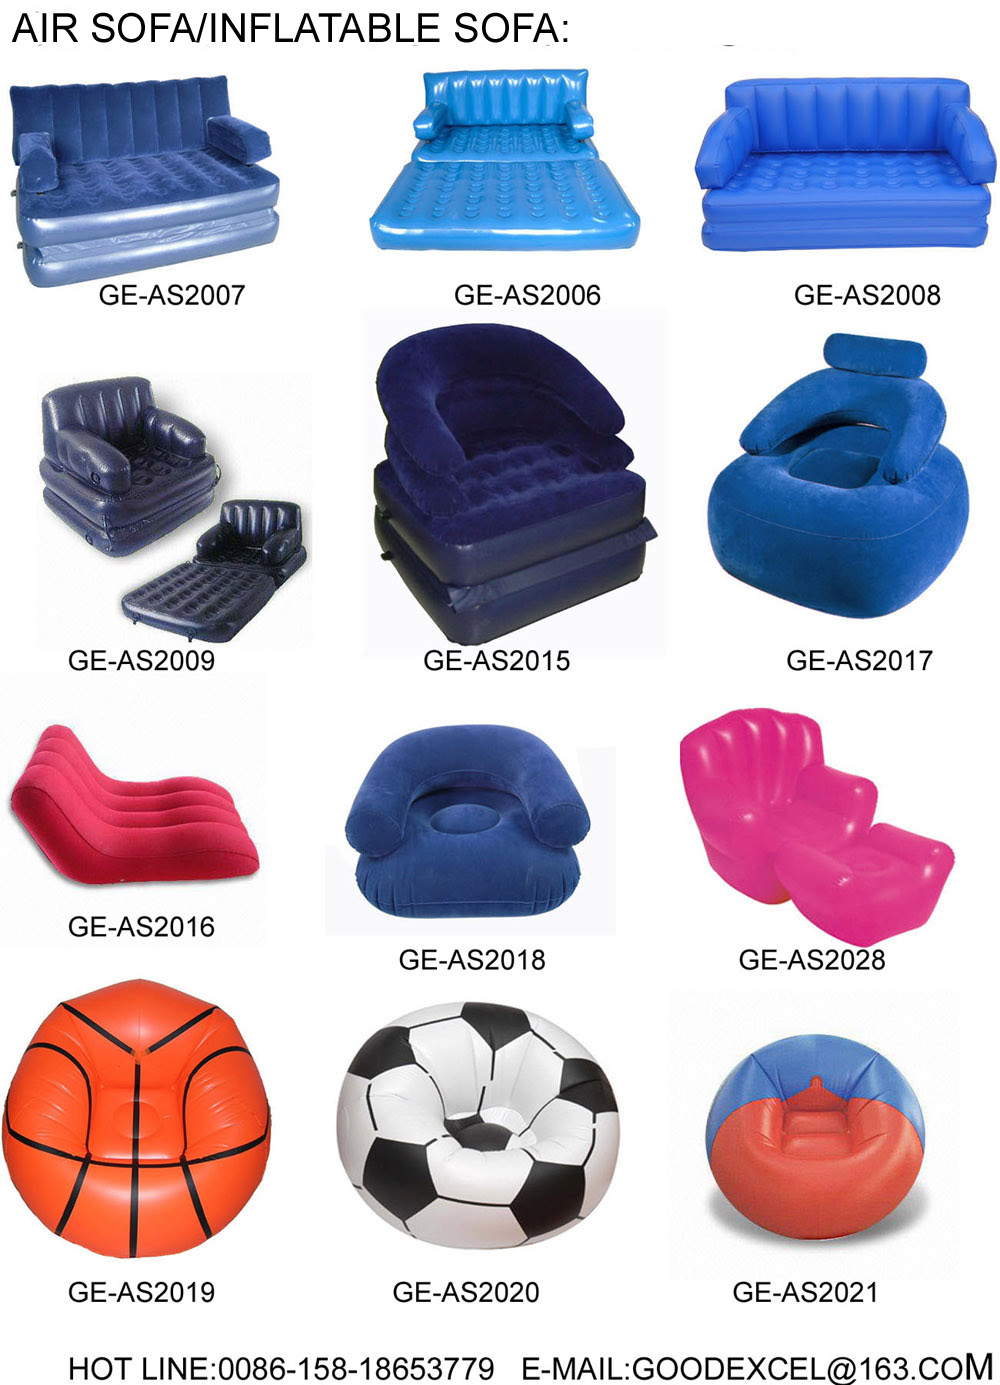 Exceptional Air Sofa/Air Sofa Bed/Inflatable Sofa/Outdoor Furniture